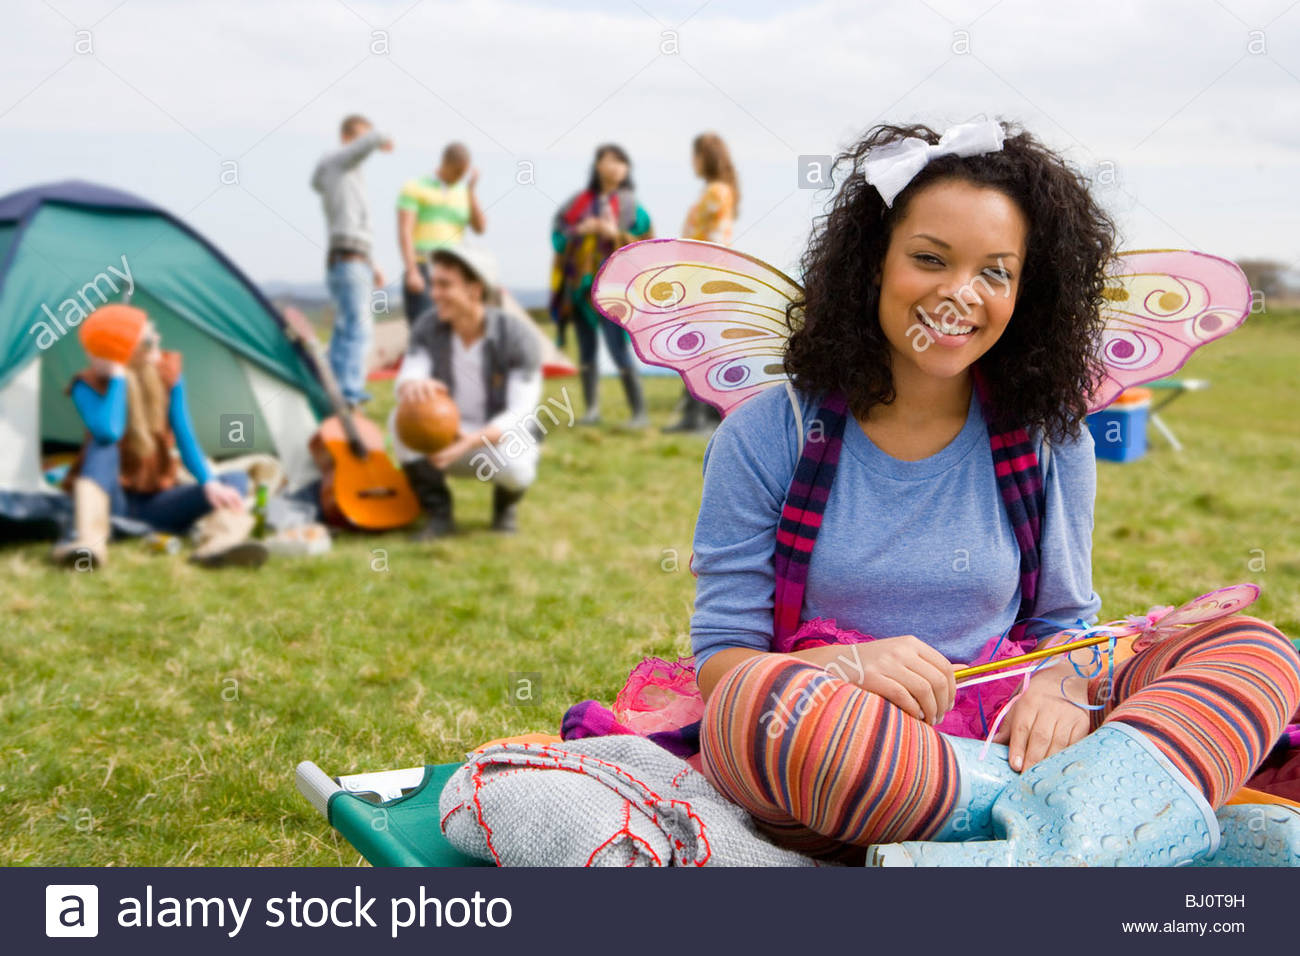 Teenage girl in fairy costume camping and attending outdoor festival - Stock Image